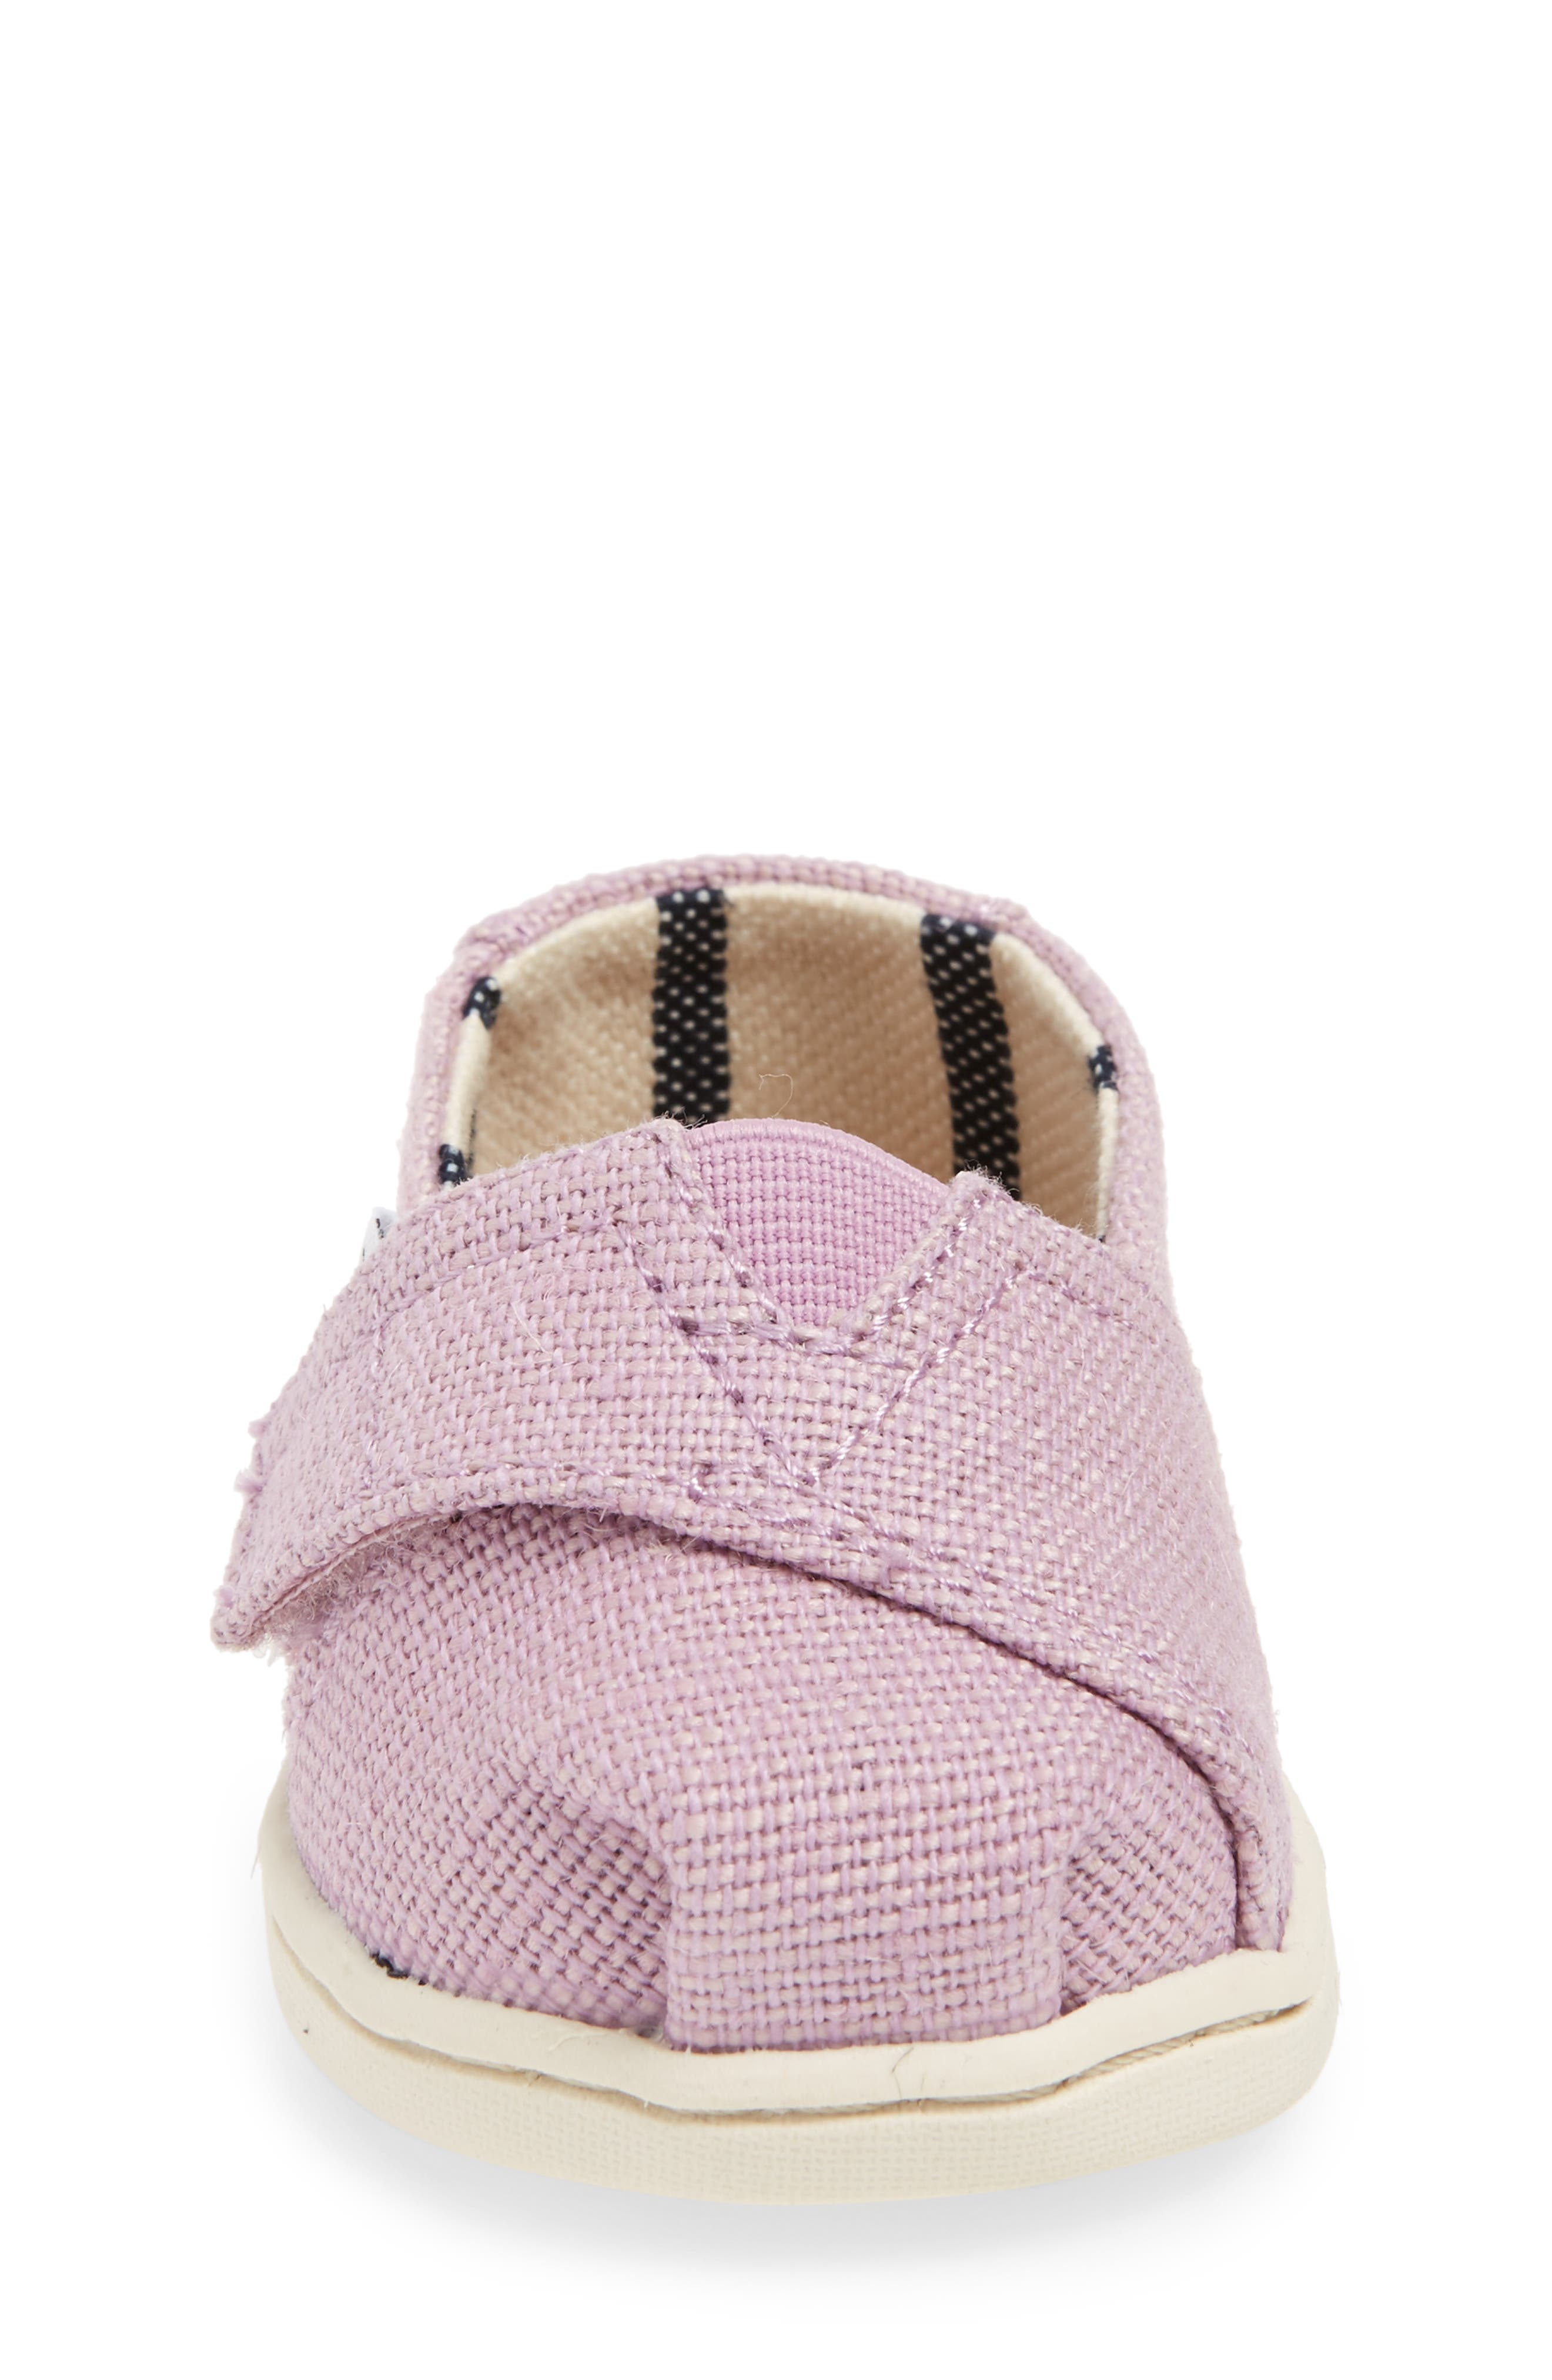 Heritage Canvas Slip-On,                             Alternate thumbnail 4, color,                             SOFT LILAC HERITAGE CANVAS